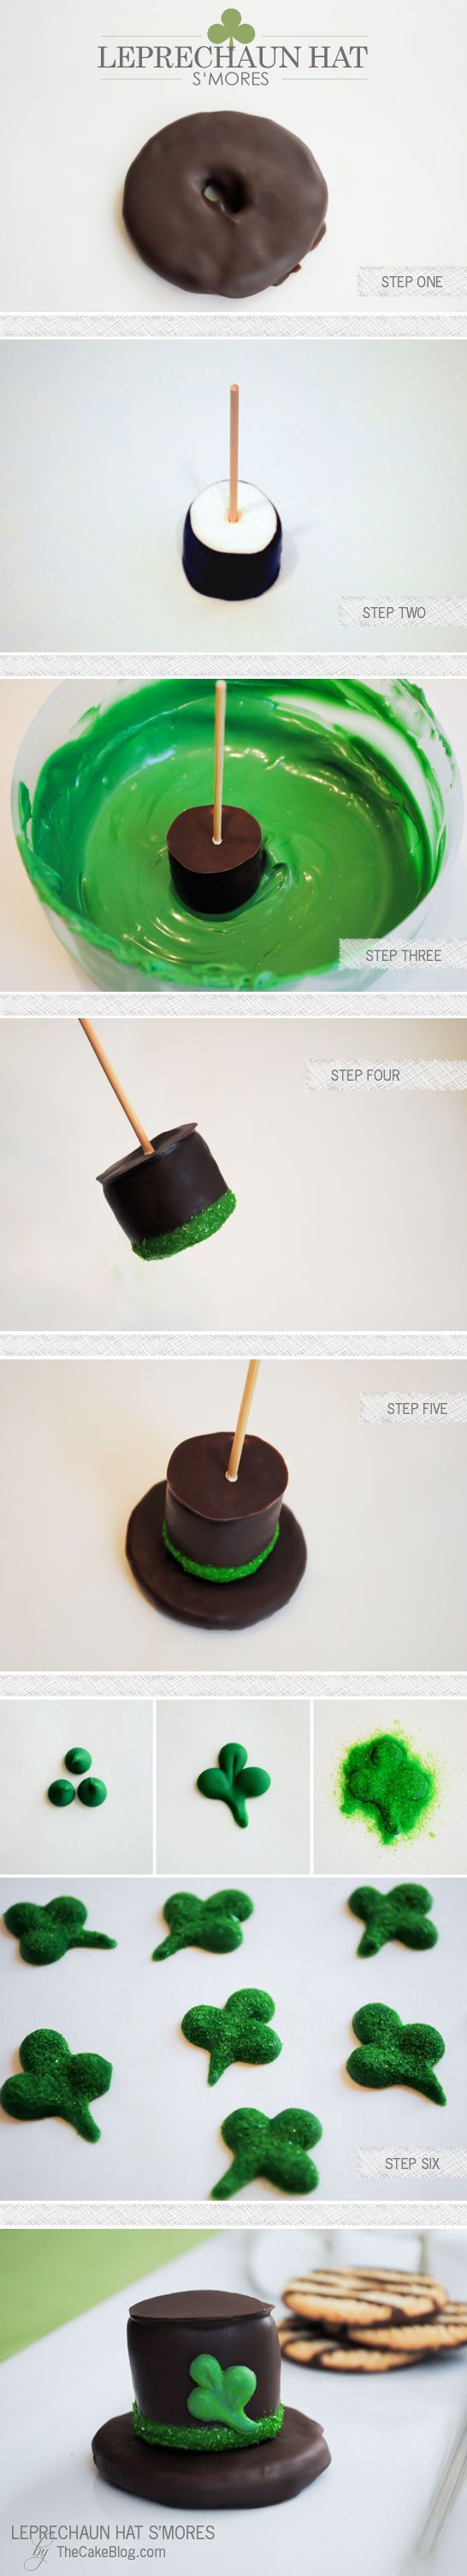 Leprechaun Hat S'mores for St. Patrick's Day   by Carrie Sellman for TheCakeBlog.com